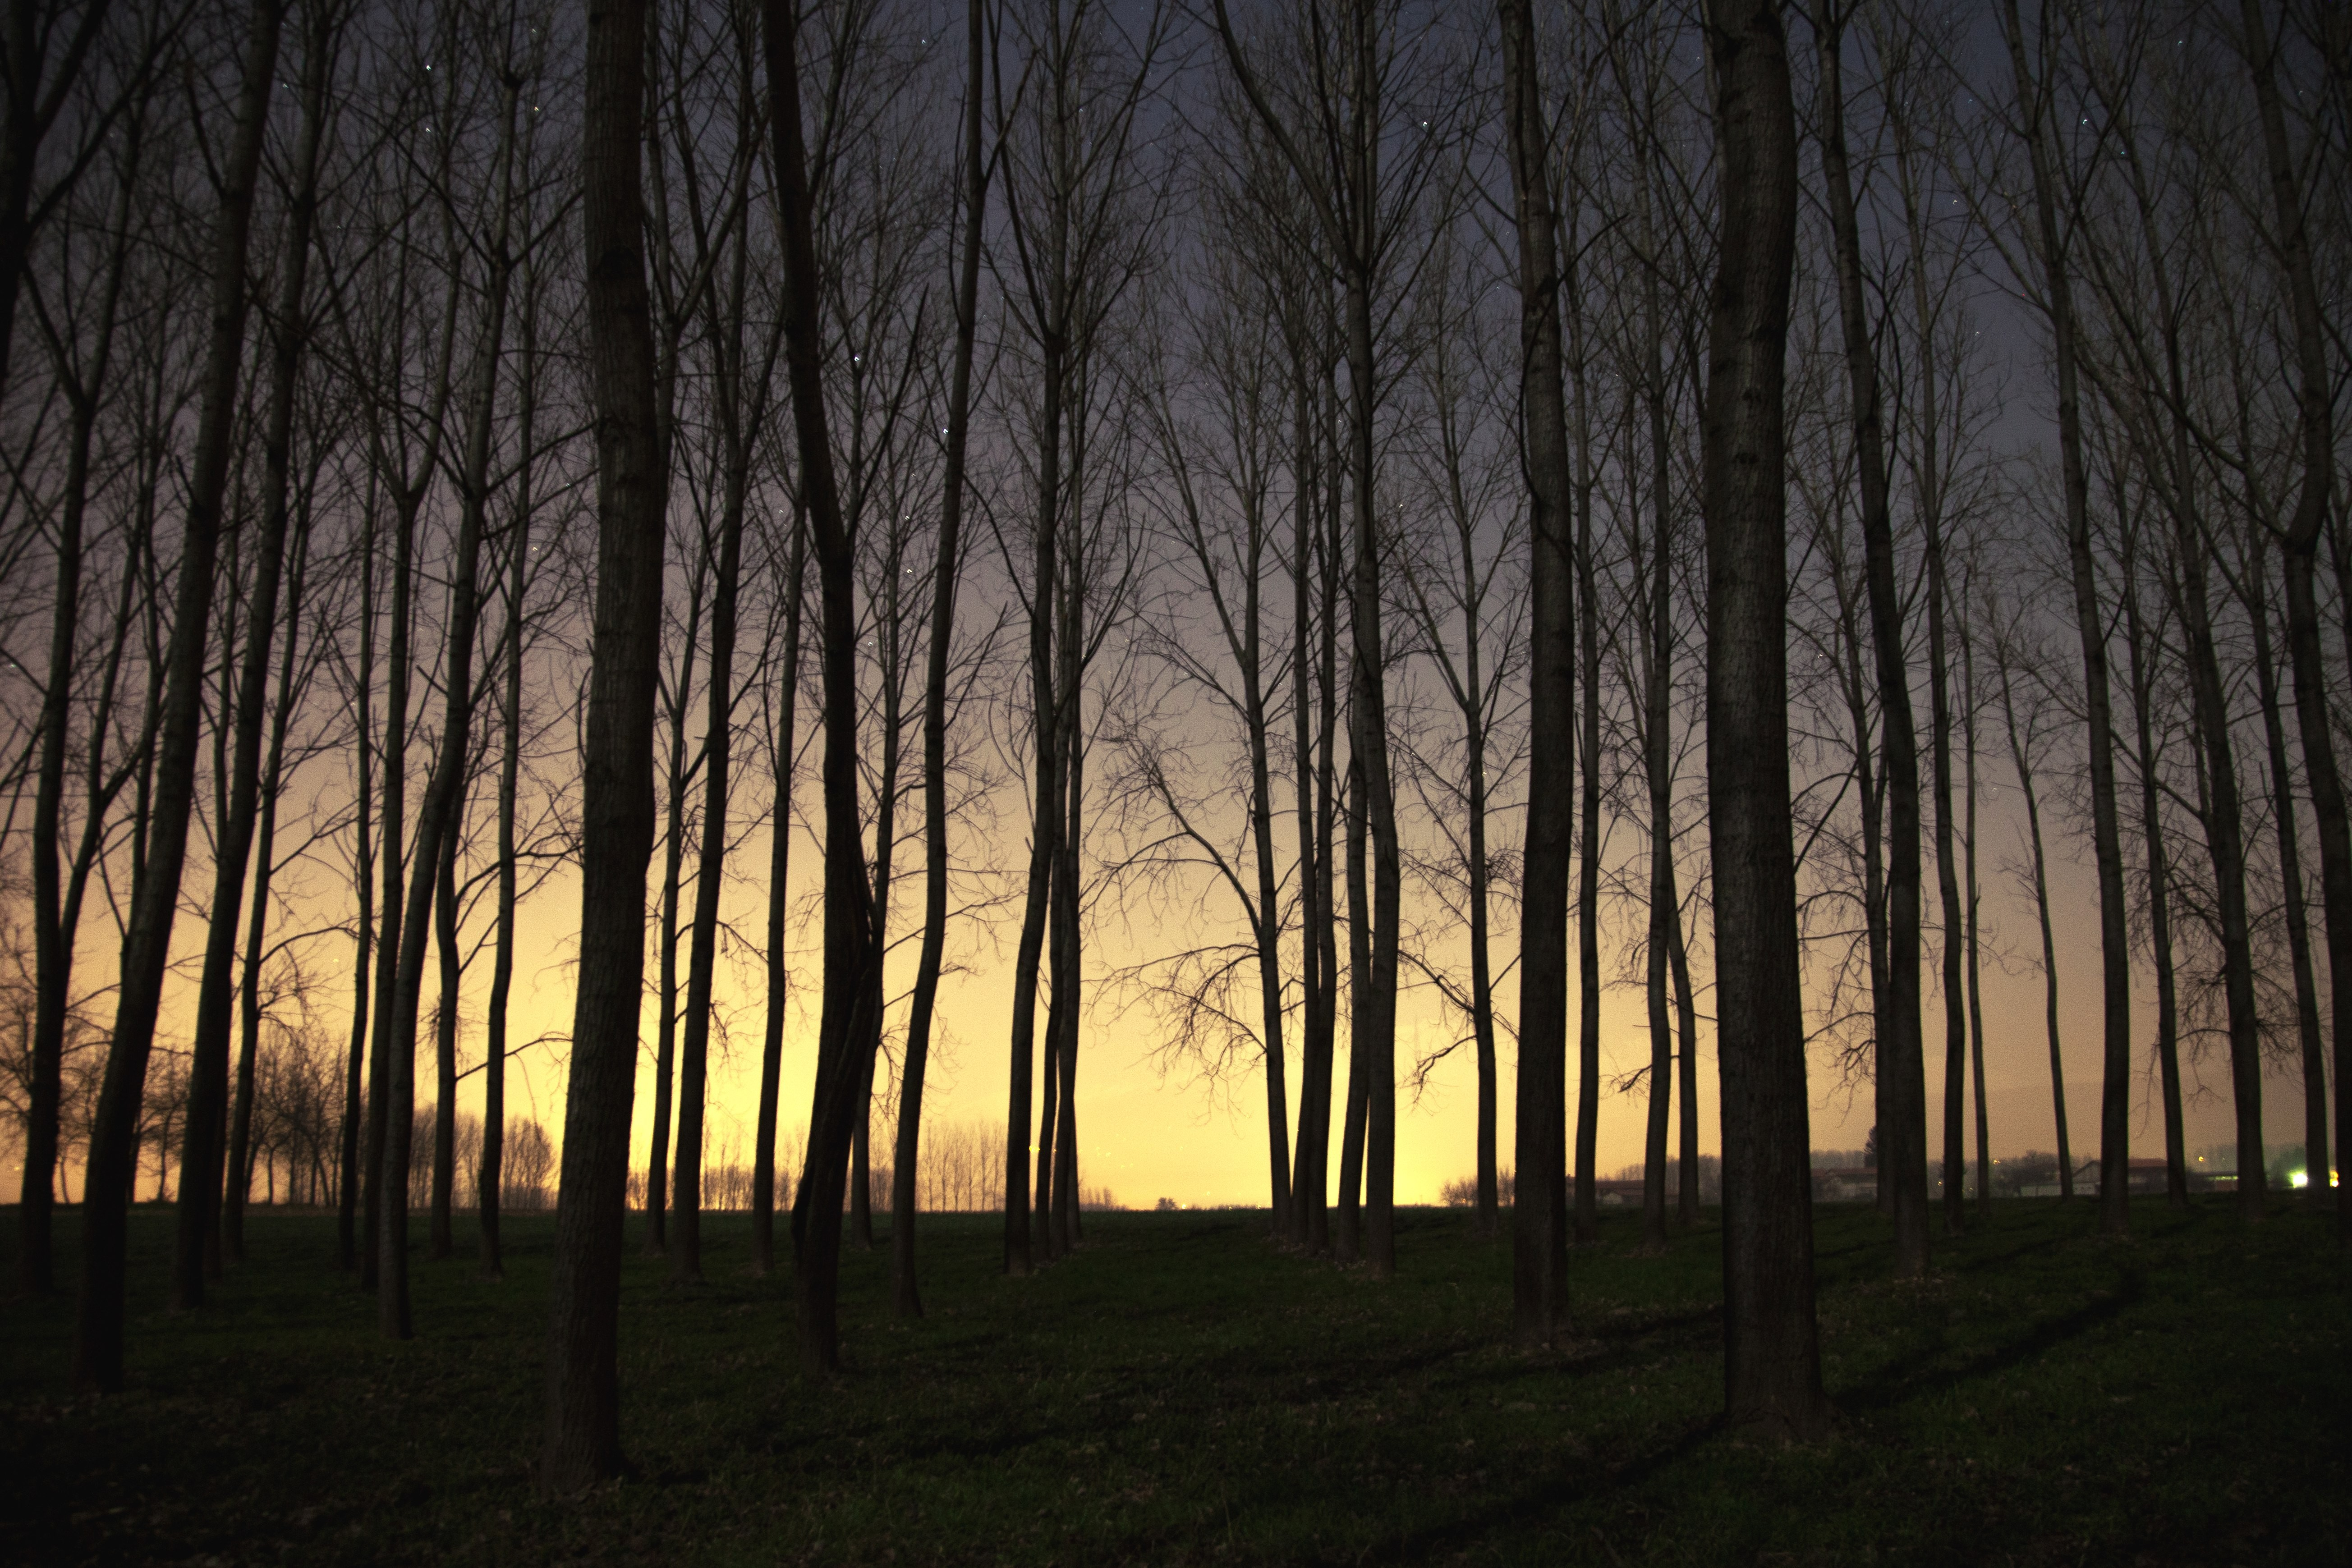 sunset landscape trees dead trees forest